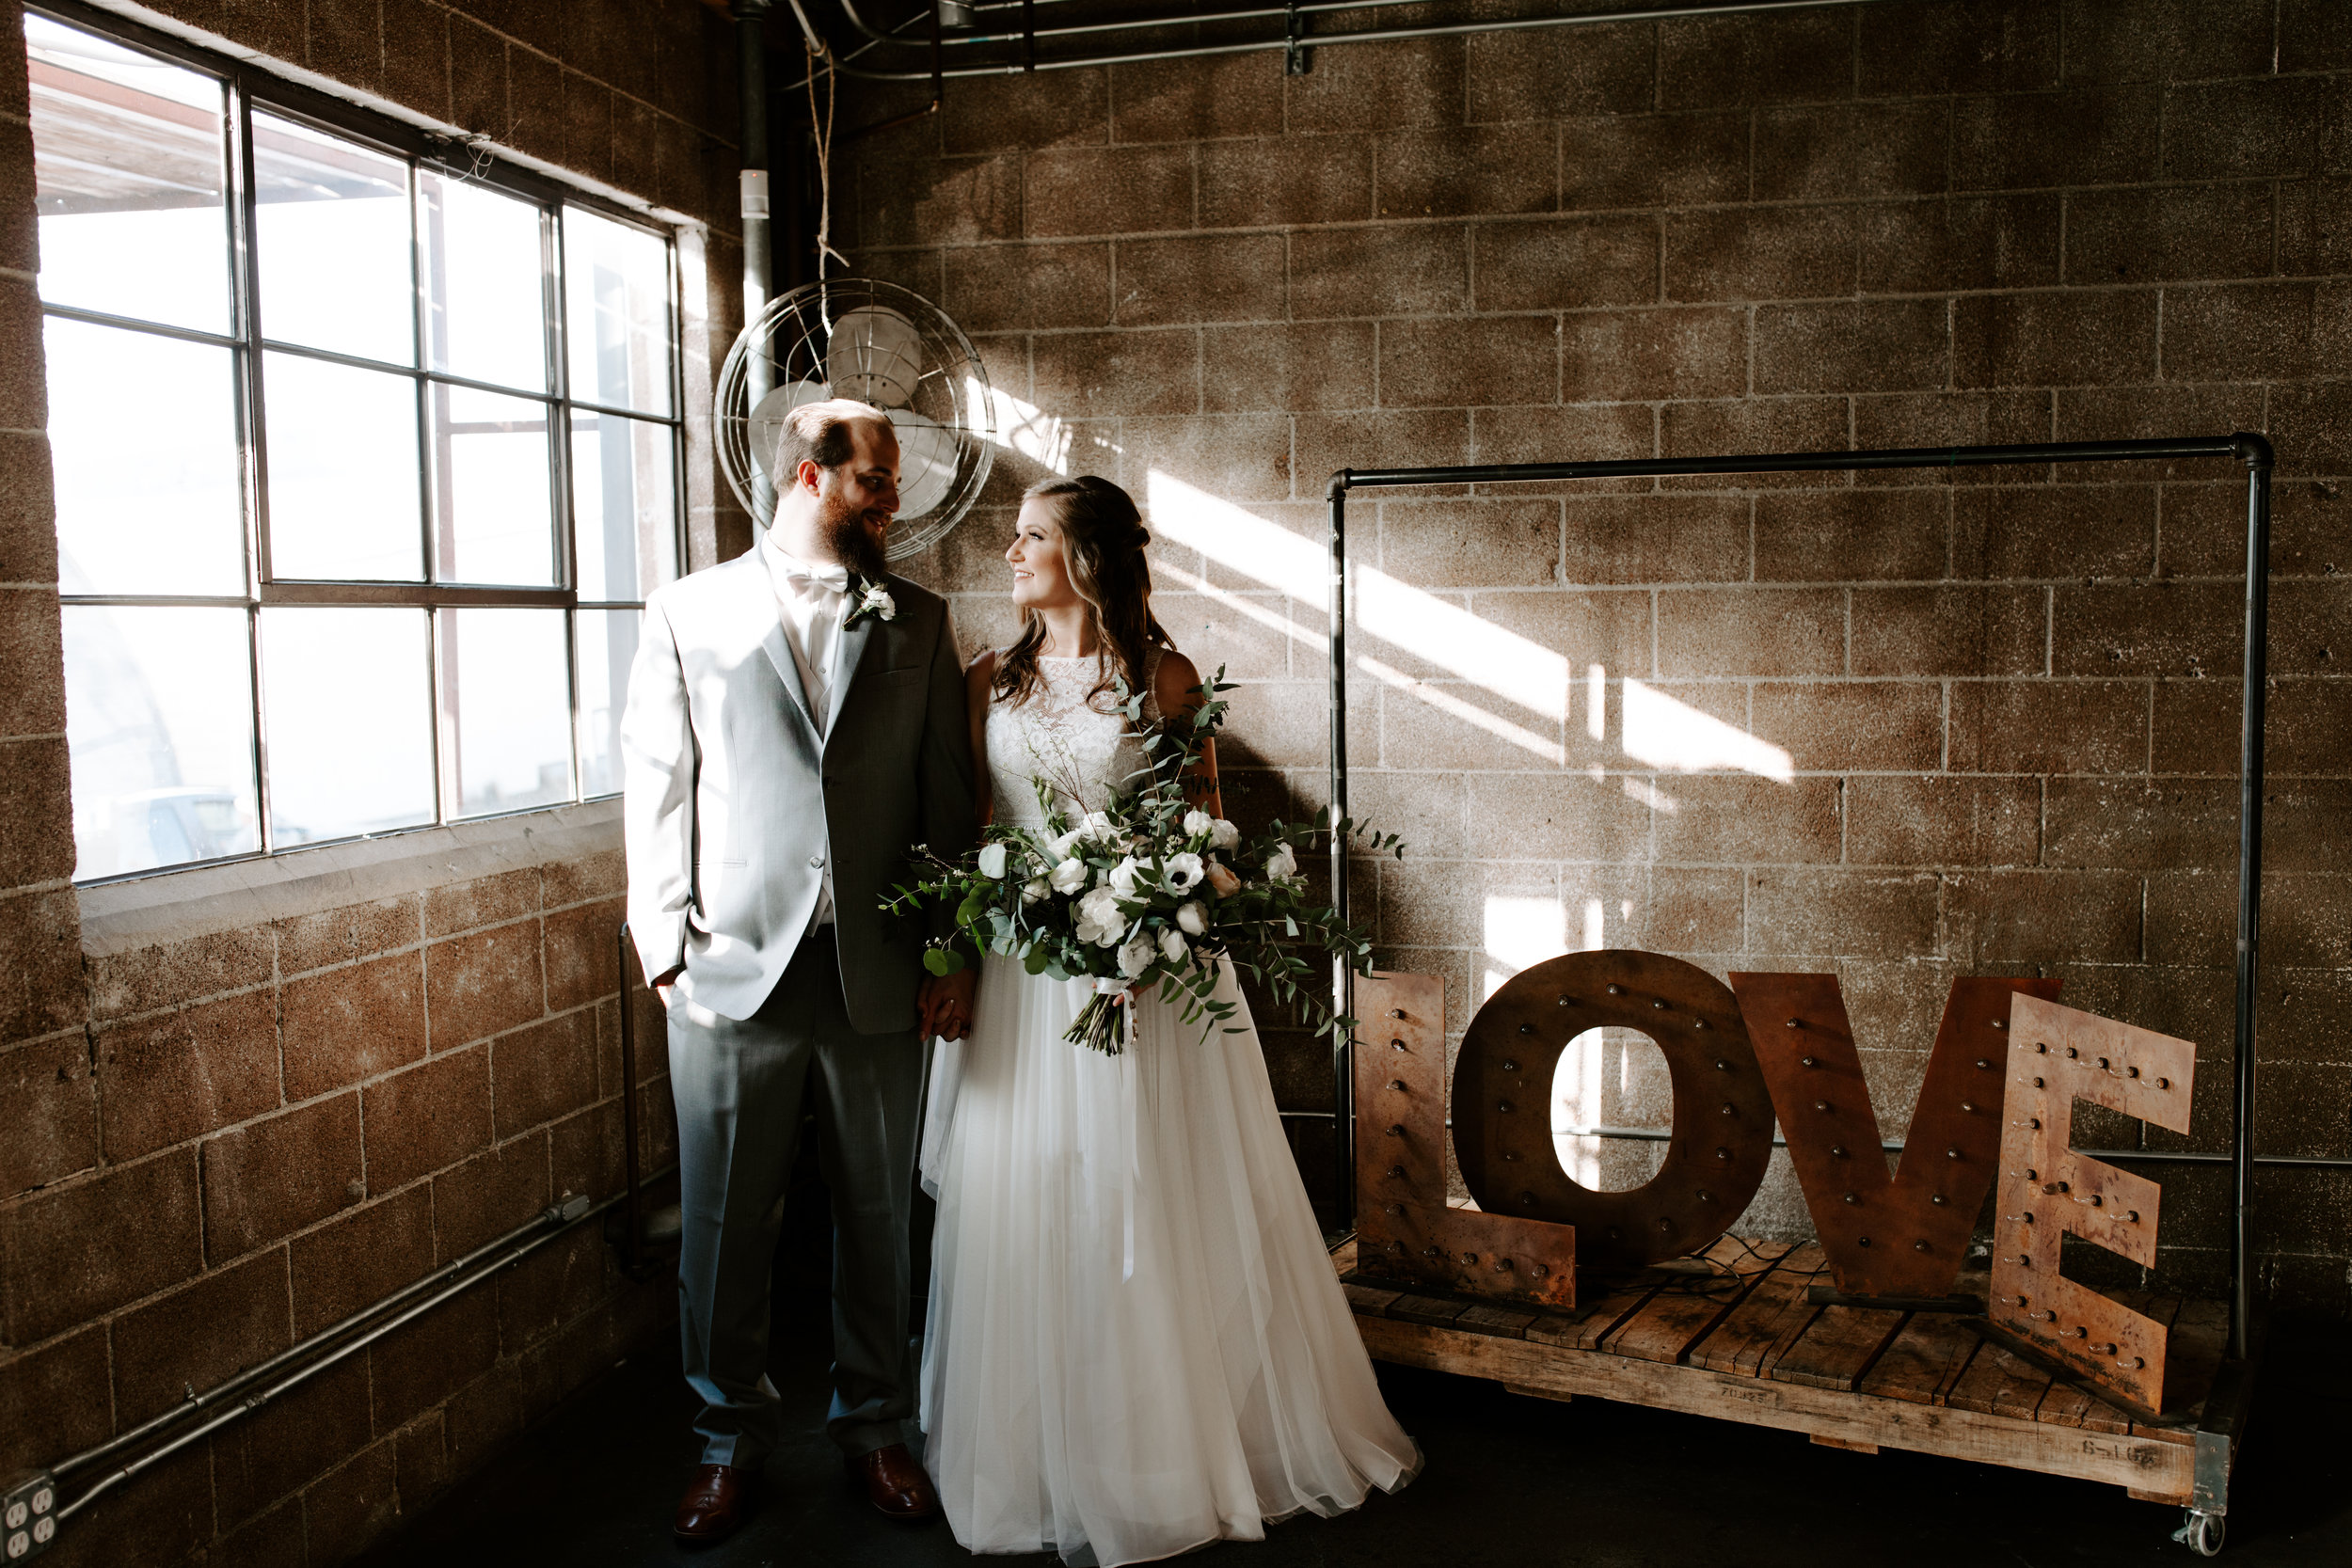 Smoky Hollow Studios Wedding Anne & Lewis Emily Magers Photography-436.jpg